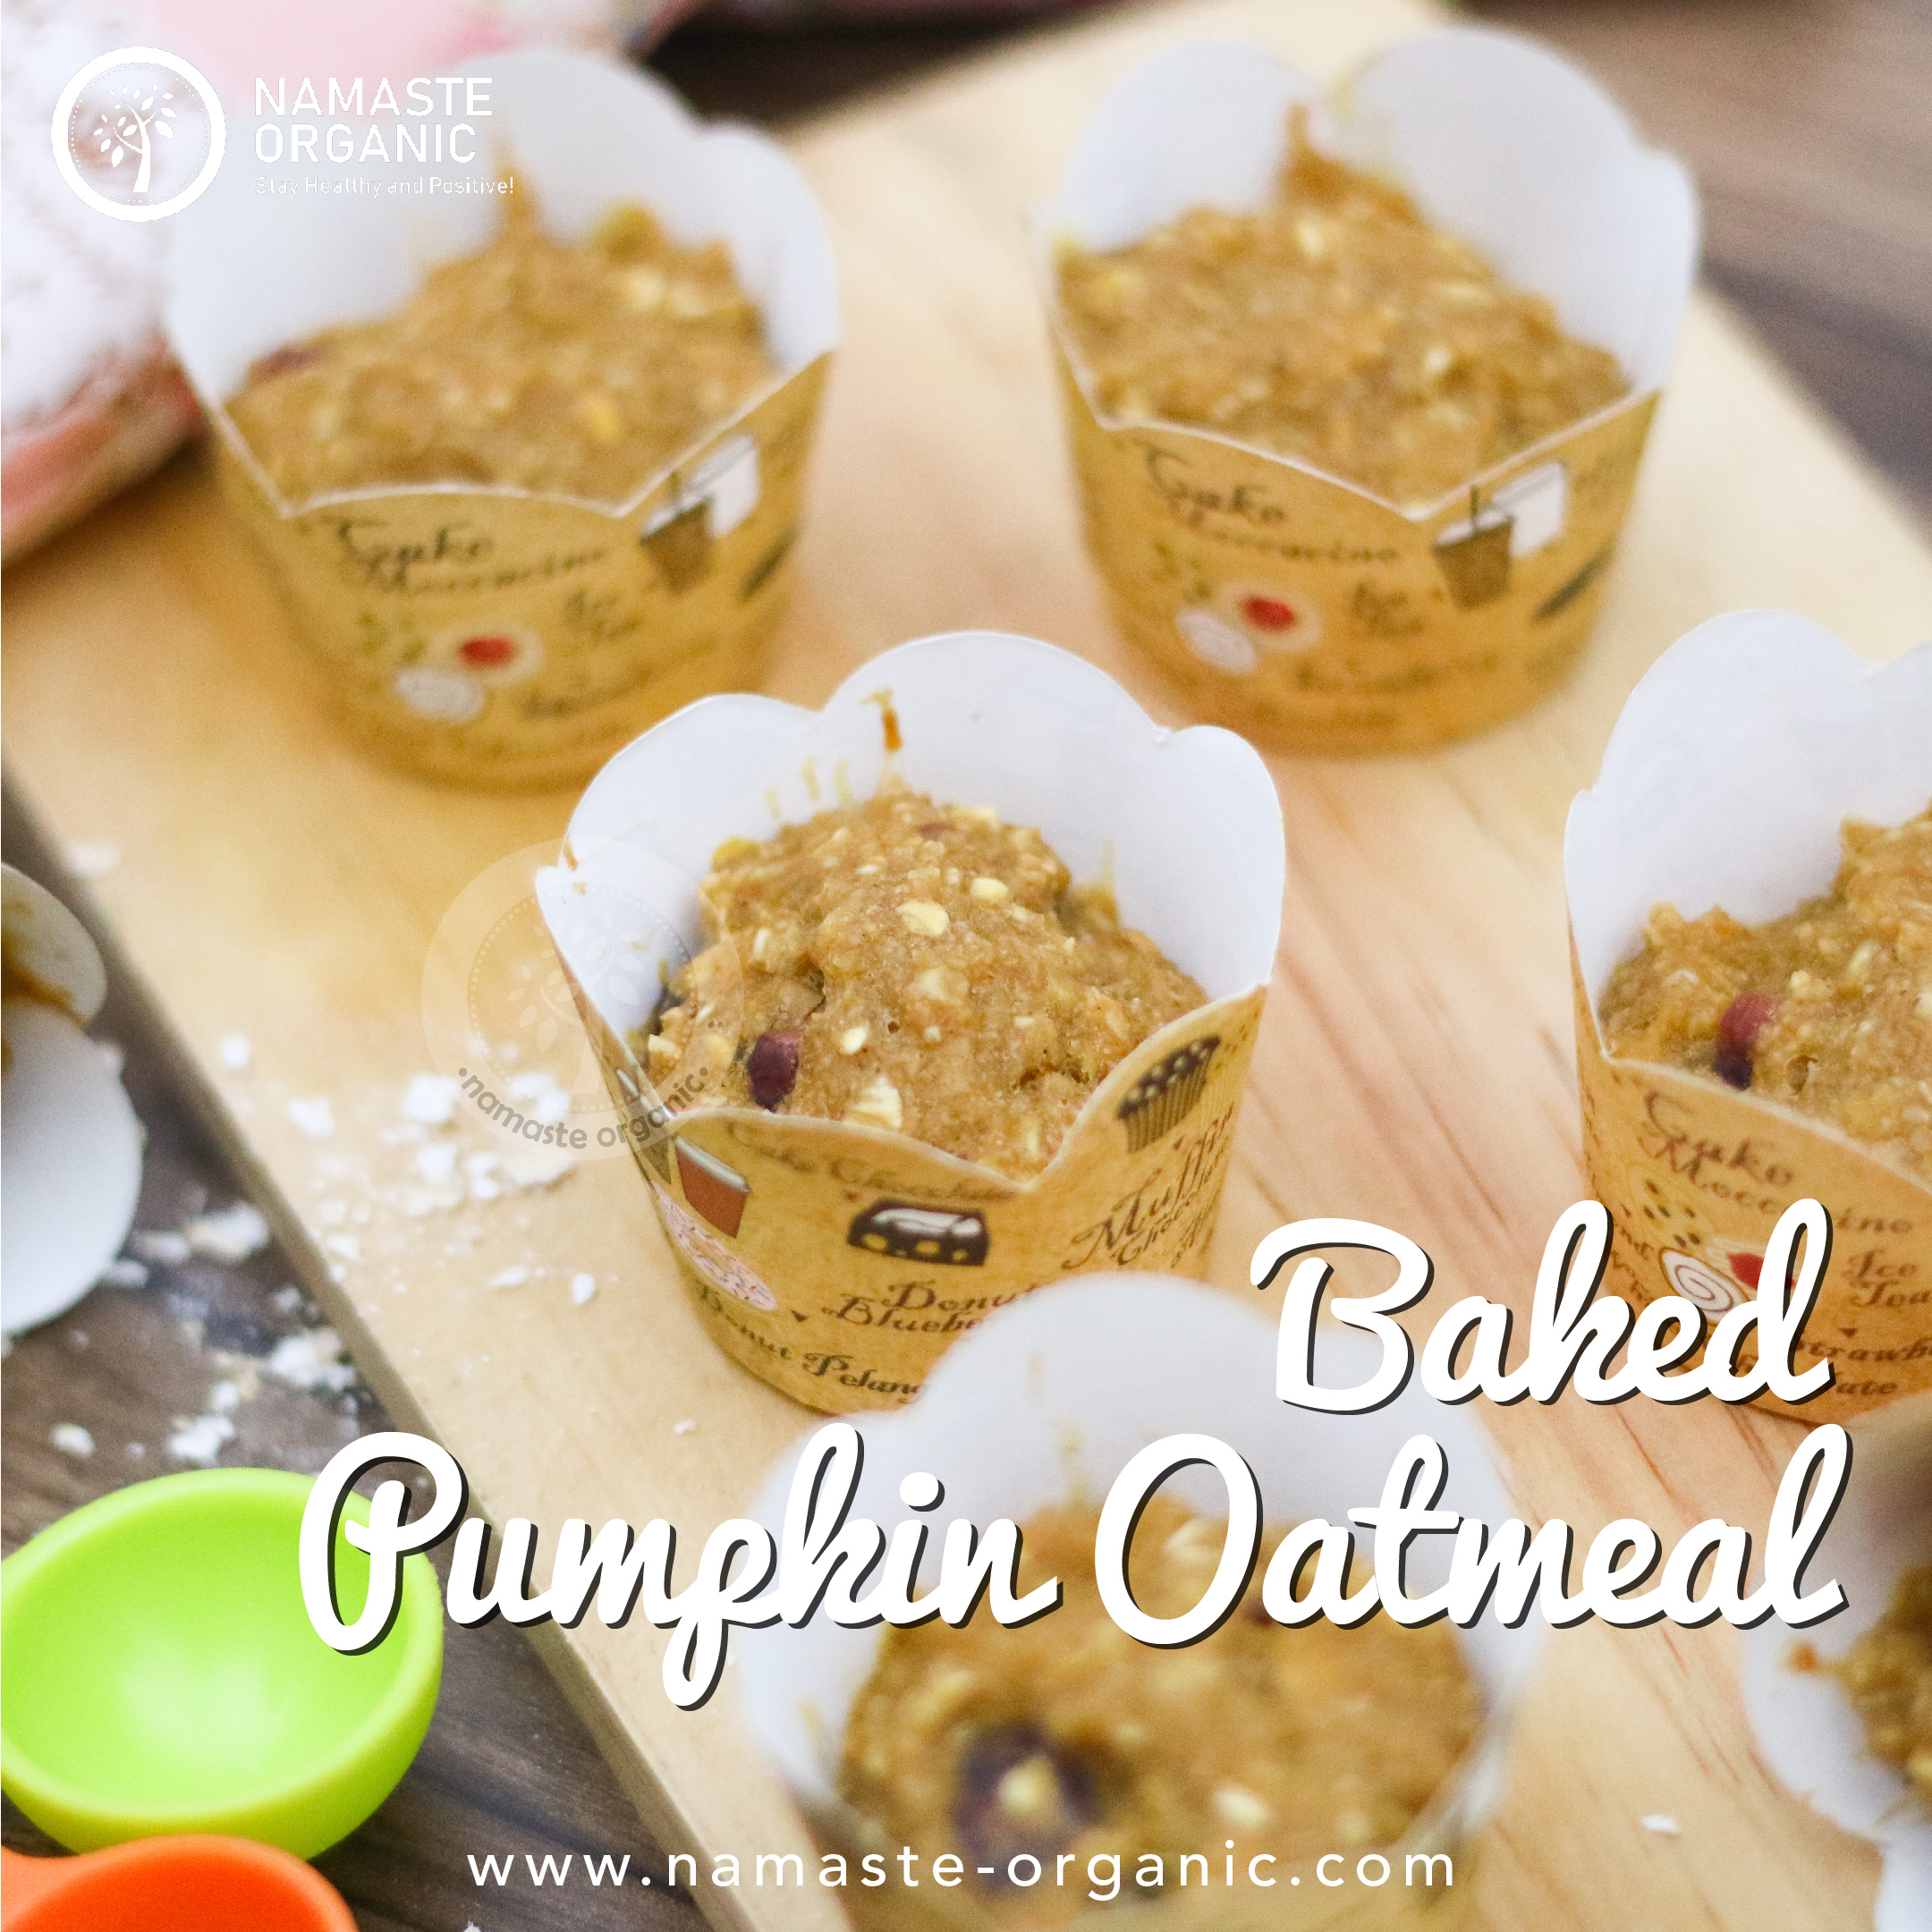 Pumpkin Cranberry Oatmeal Cup image